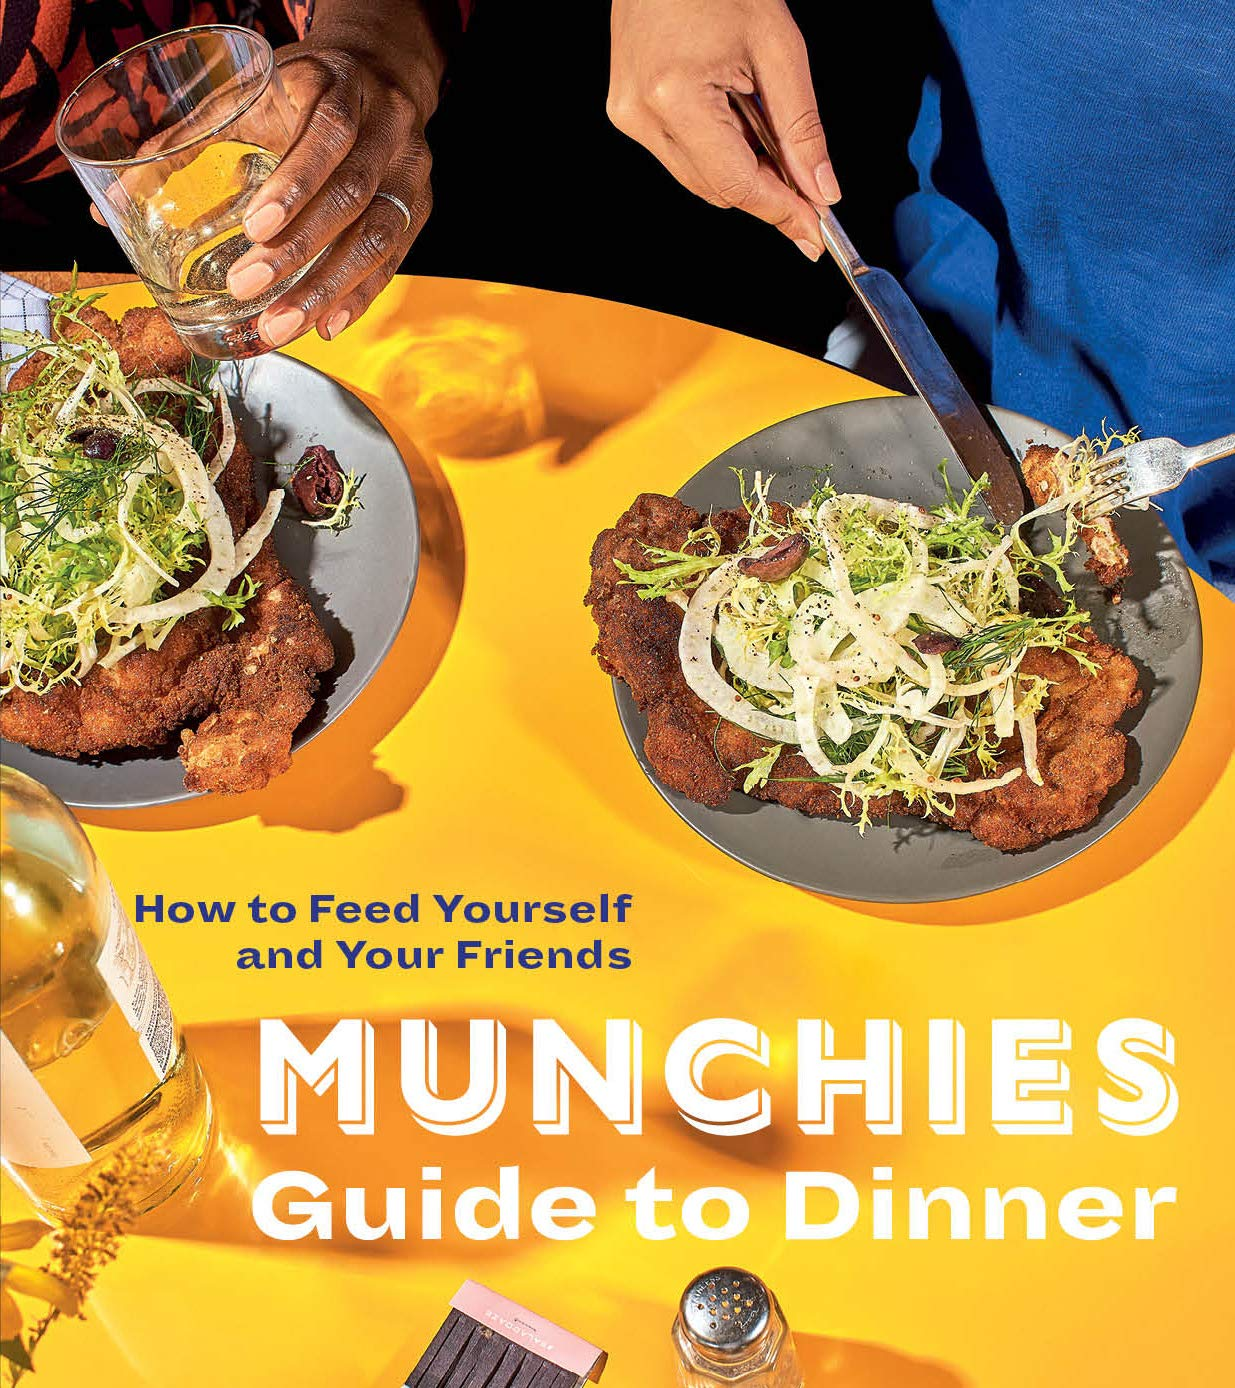 MUNCHIES Guide to Dinner: How to Feed Yourself and Your Friends [A Cookbook] by Ten Speed Press